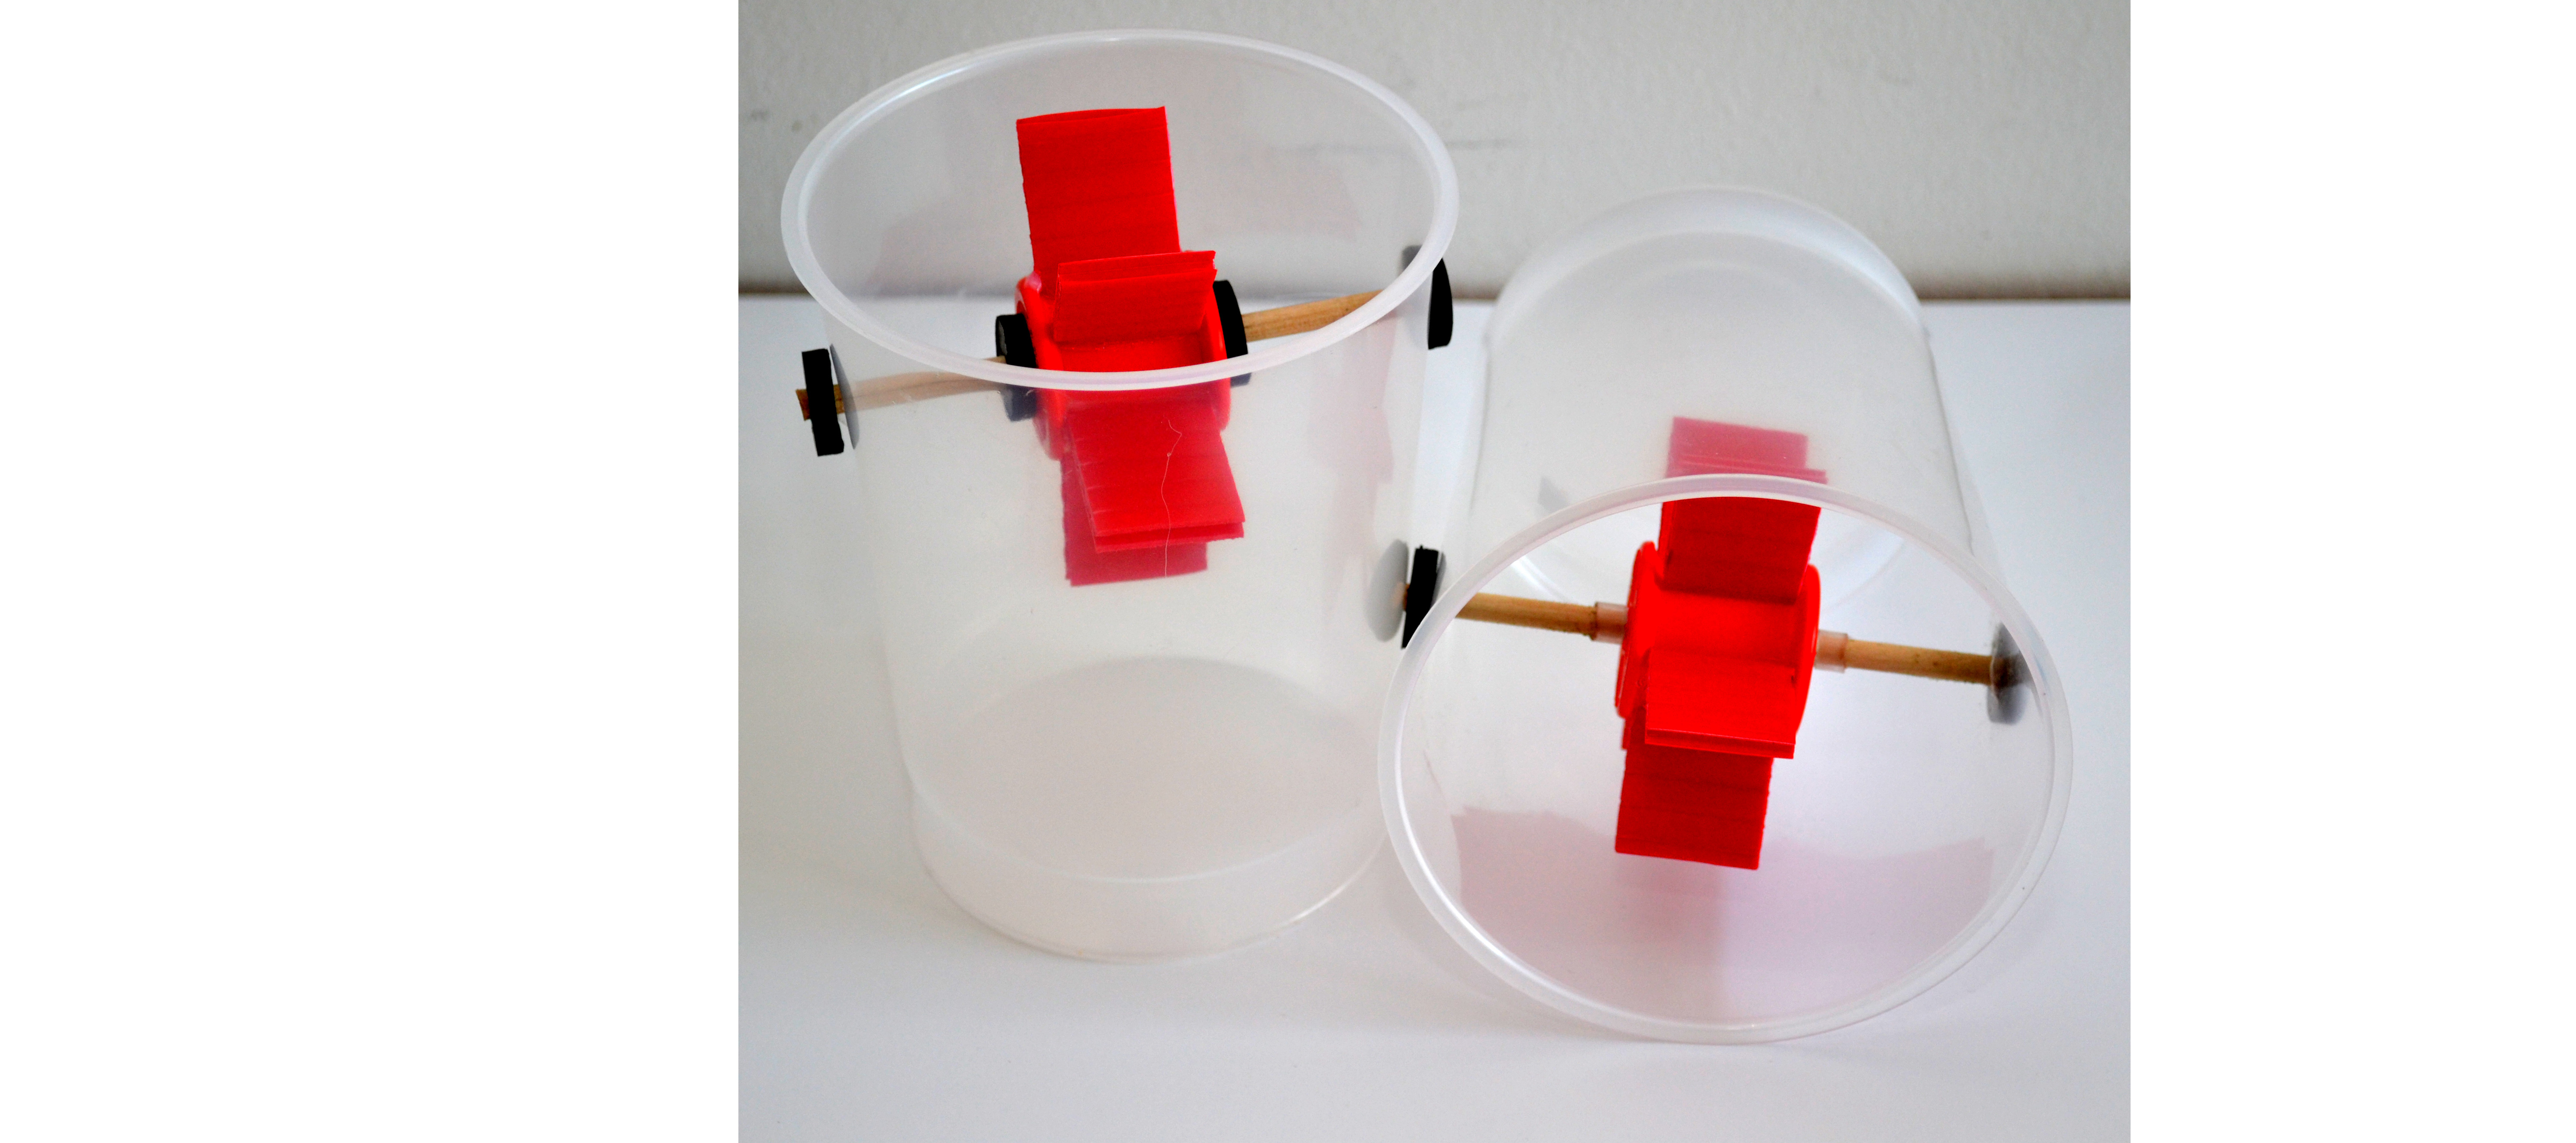 Water Turbine – Play Resource Presents Science From Scrap